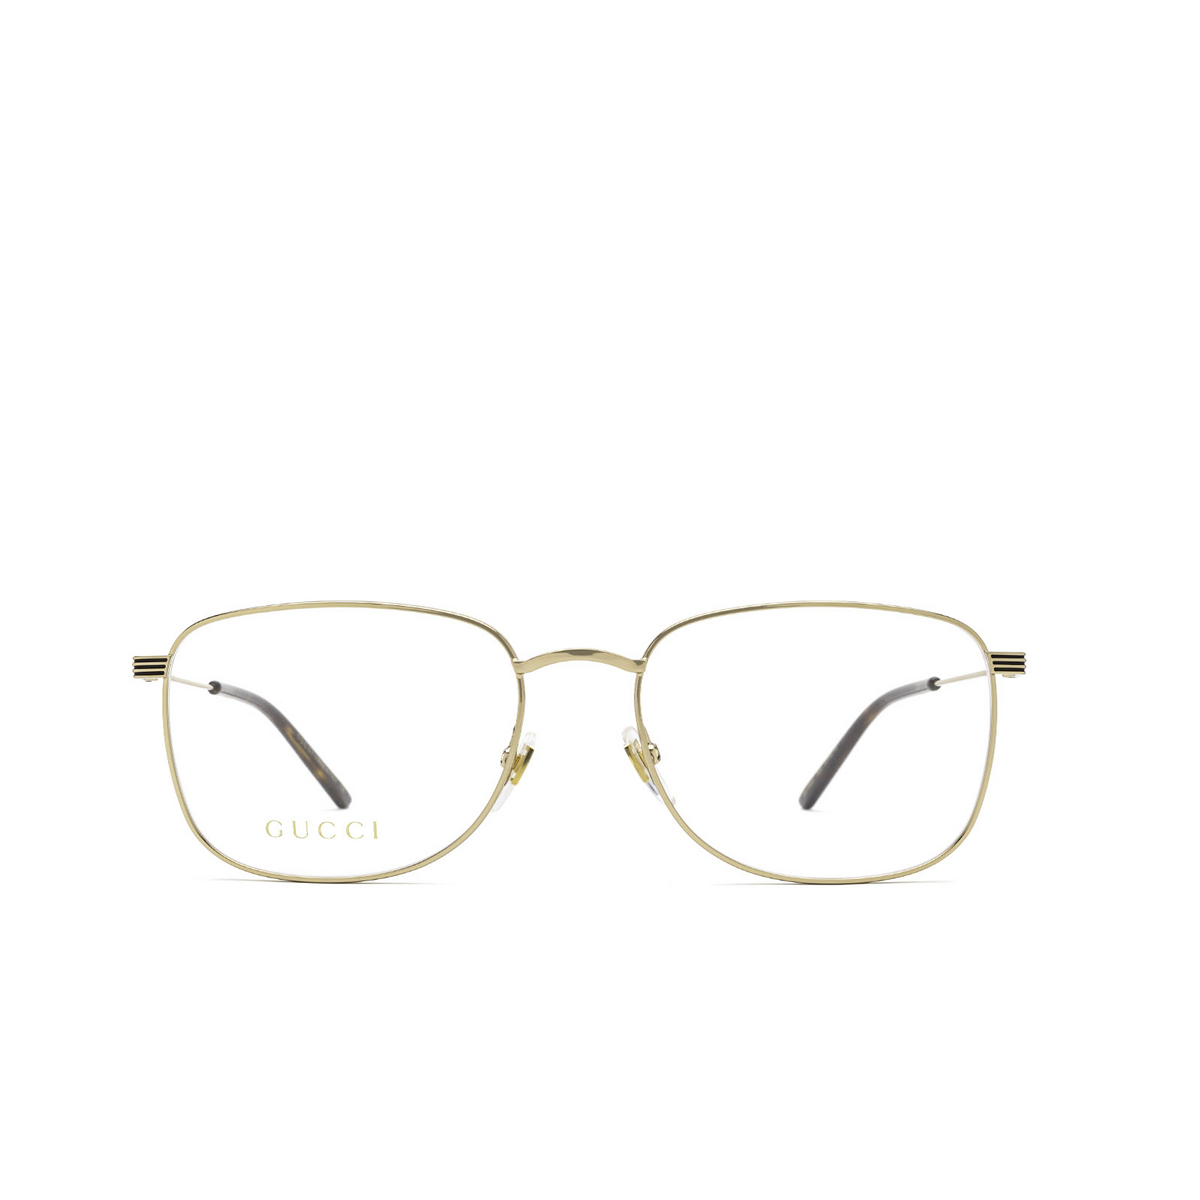 Gucci® Square Eyeglasses: GG1052O color Gold 004 - front view.